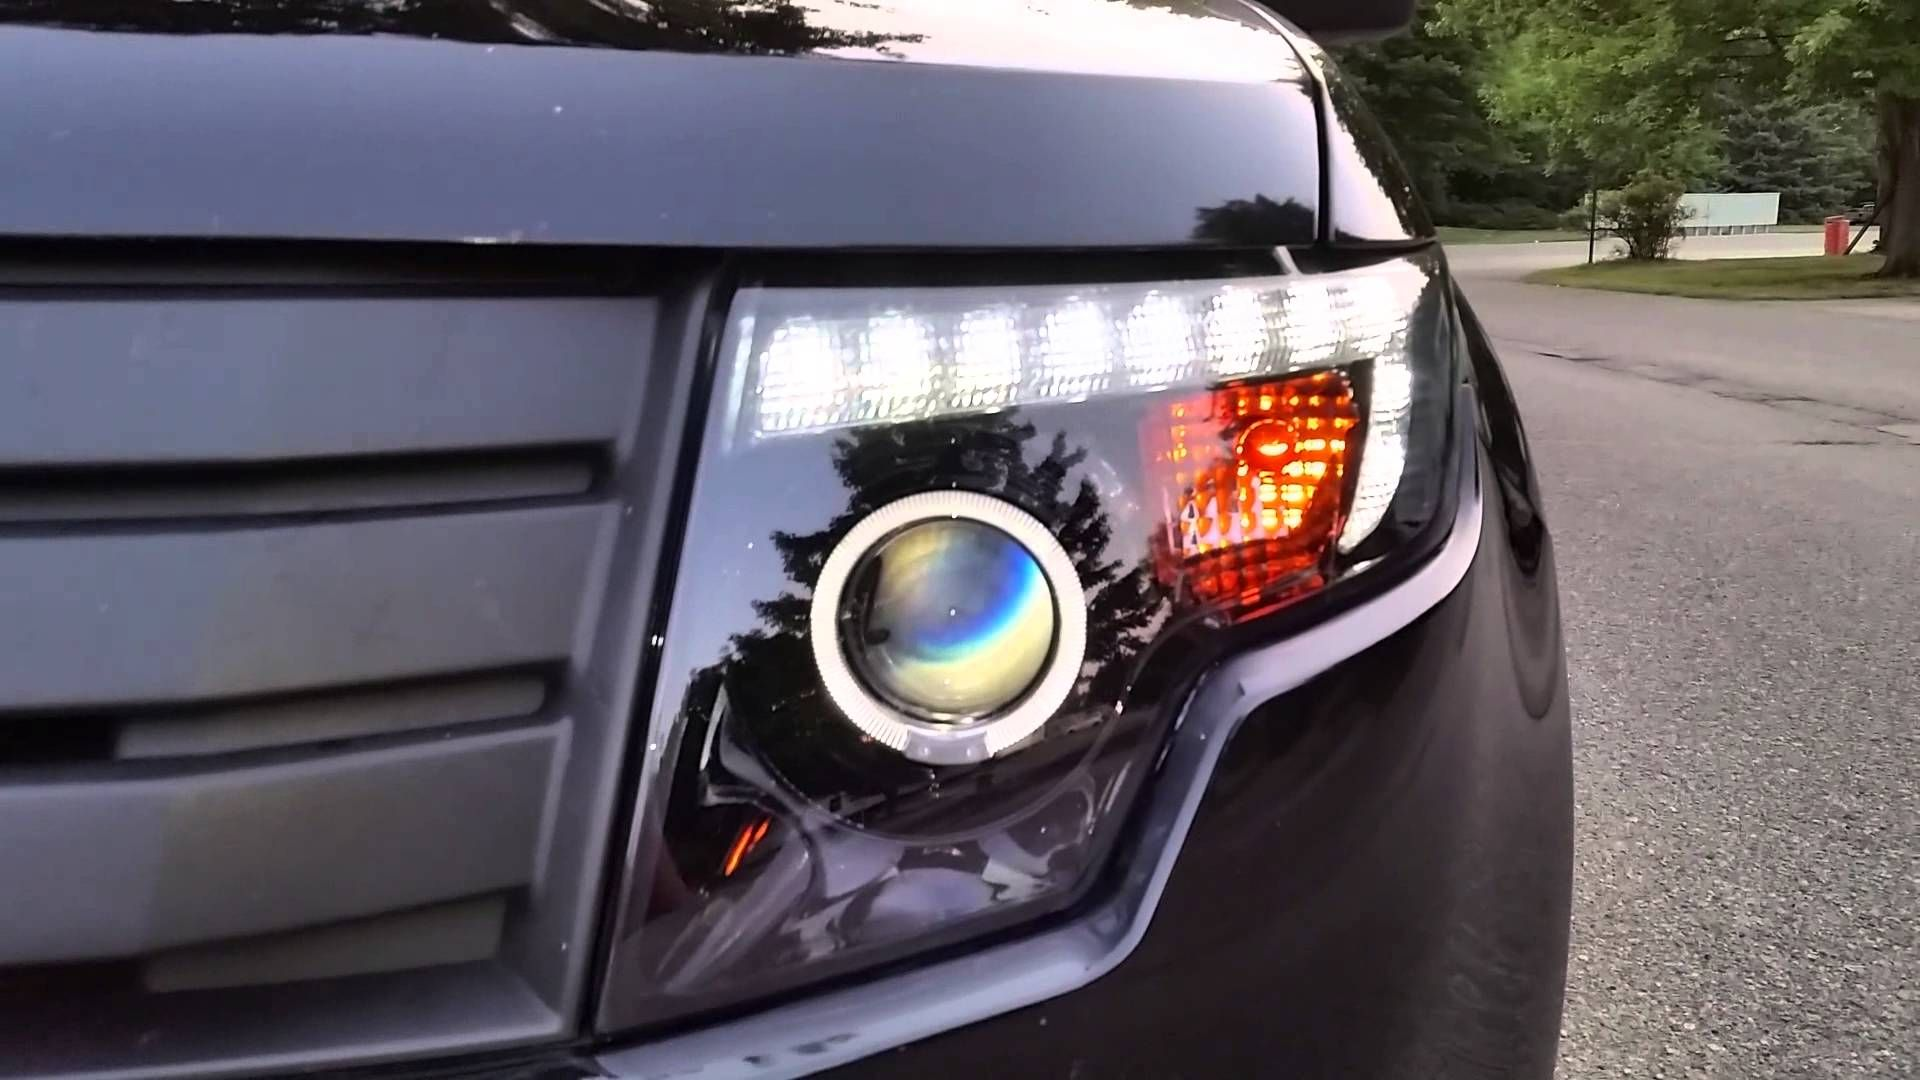 How To Install Ford Edge Projector Headlights Ford Edge Headlight Covers Projector Headlights